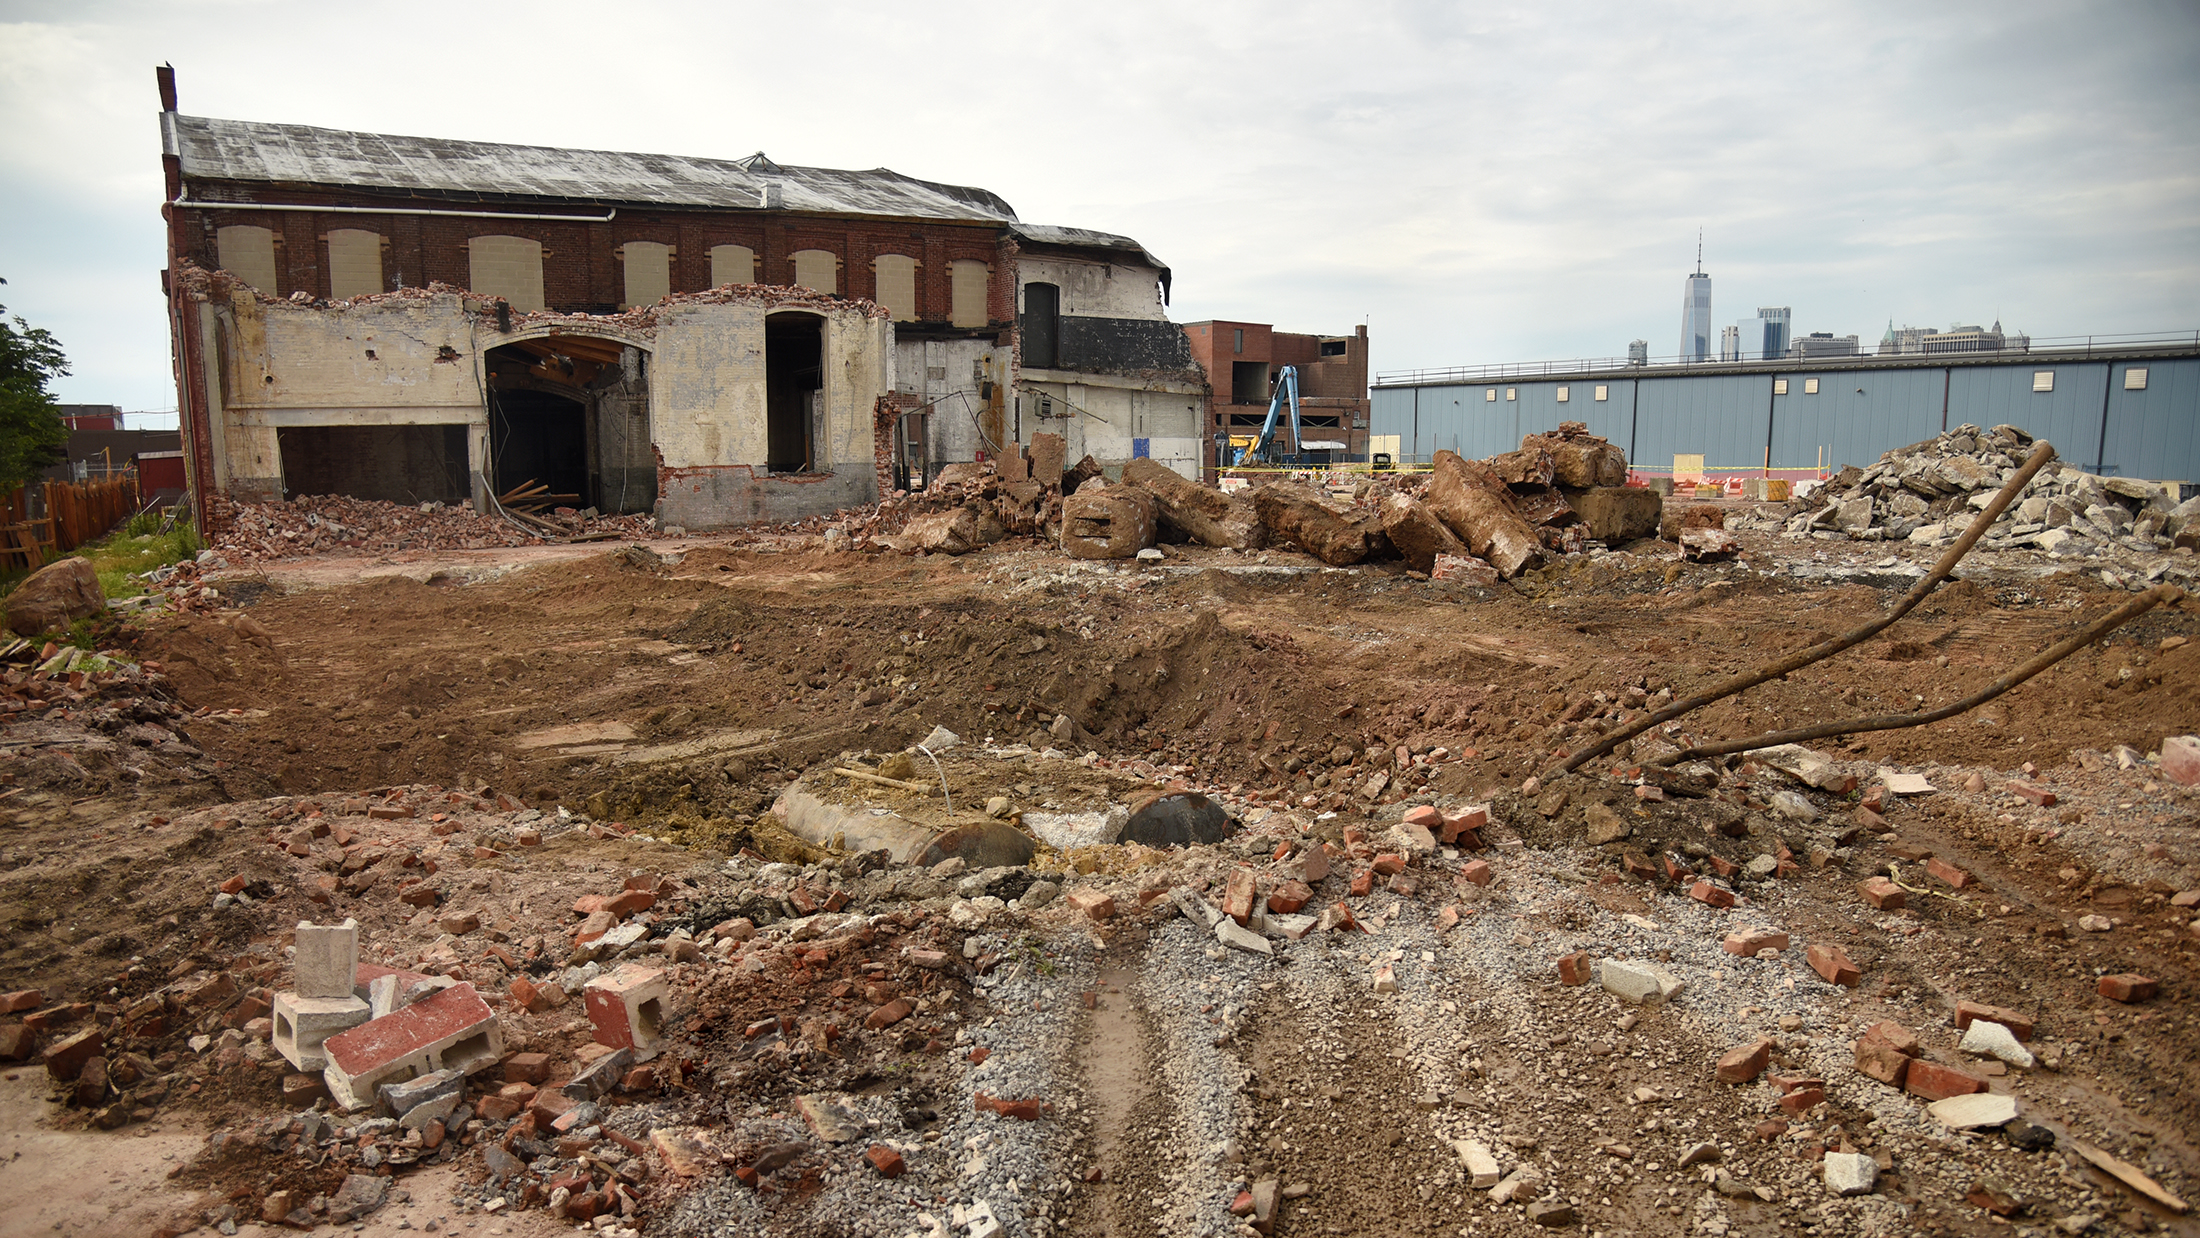 As Red Hook's industrial history is demolished, what comes next for the neighborhood?